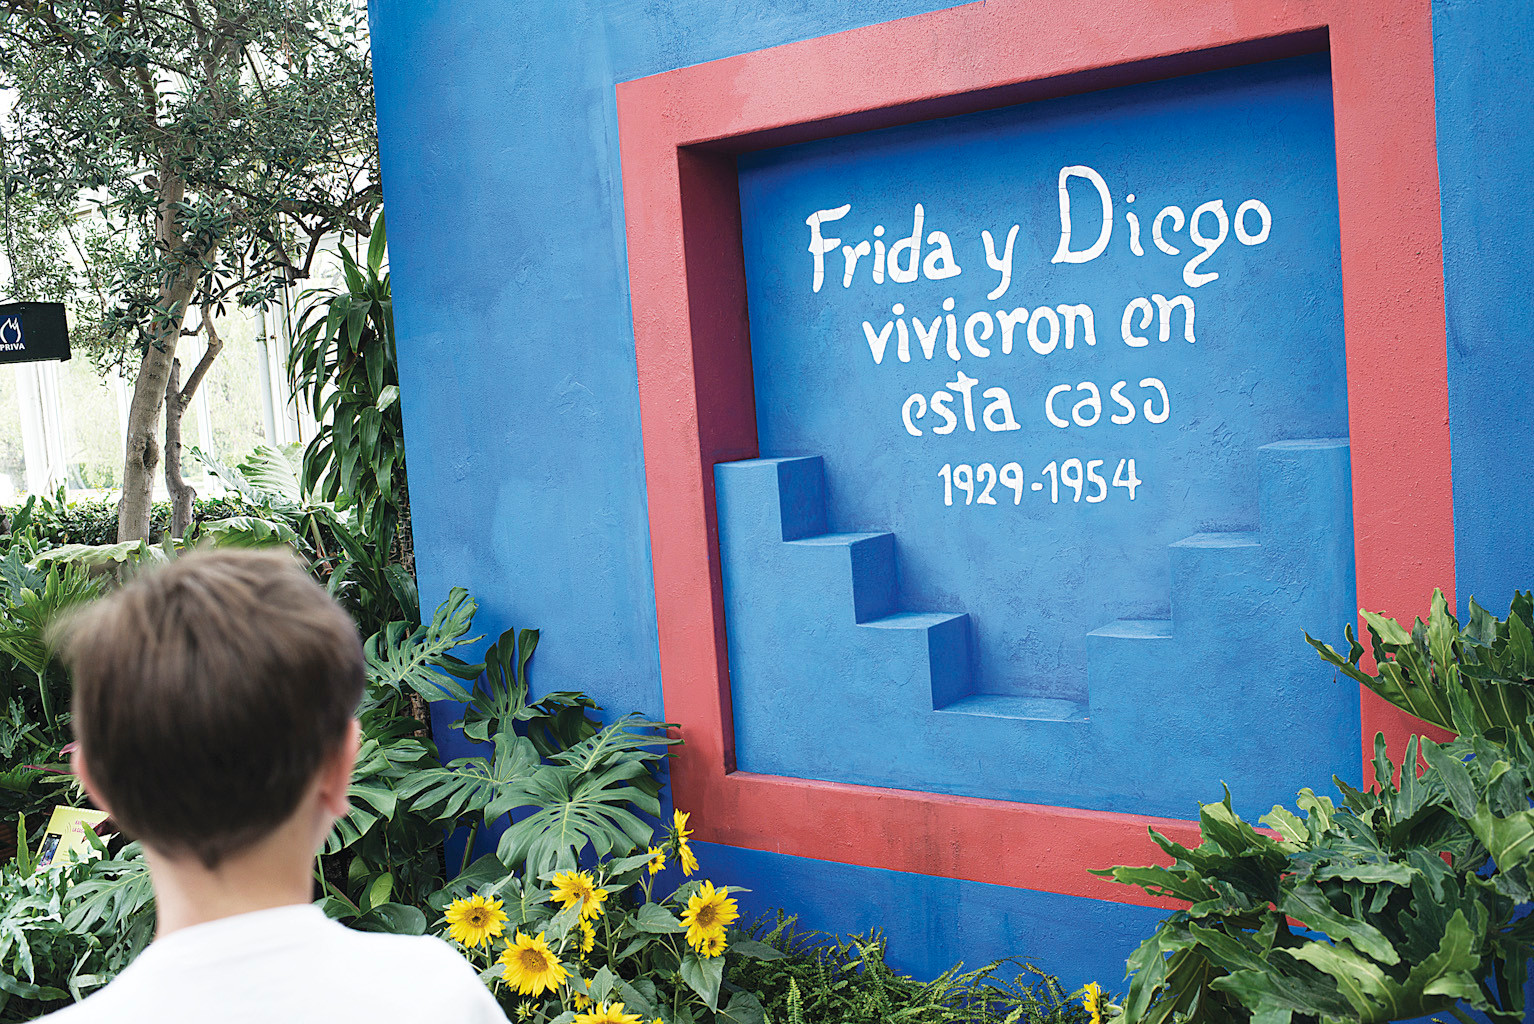 The home of Frida Kahlo and her husband Diego Rivera in Mexico City was known as 'Casa Azul.'